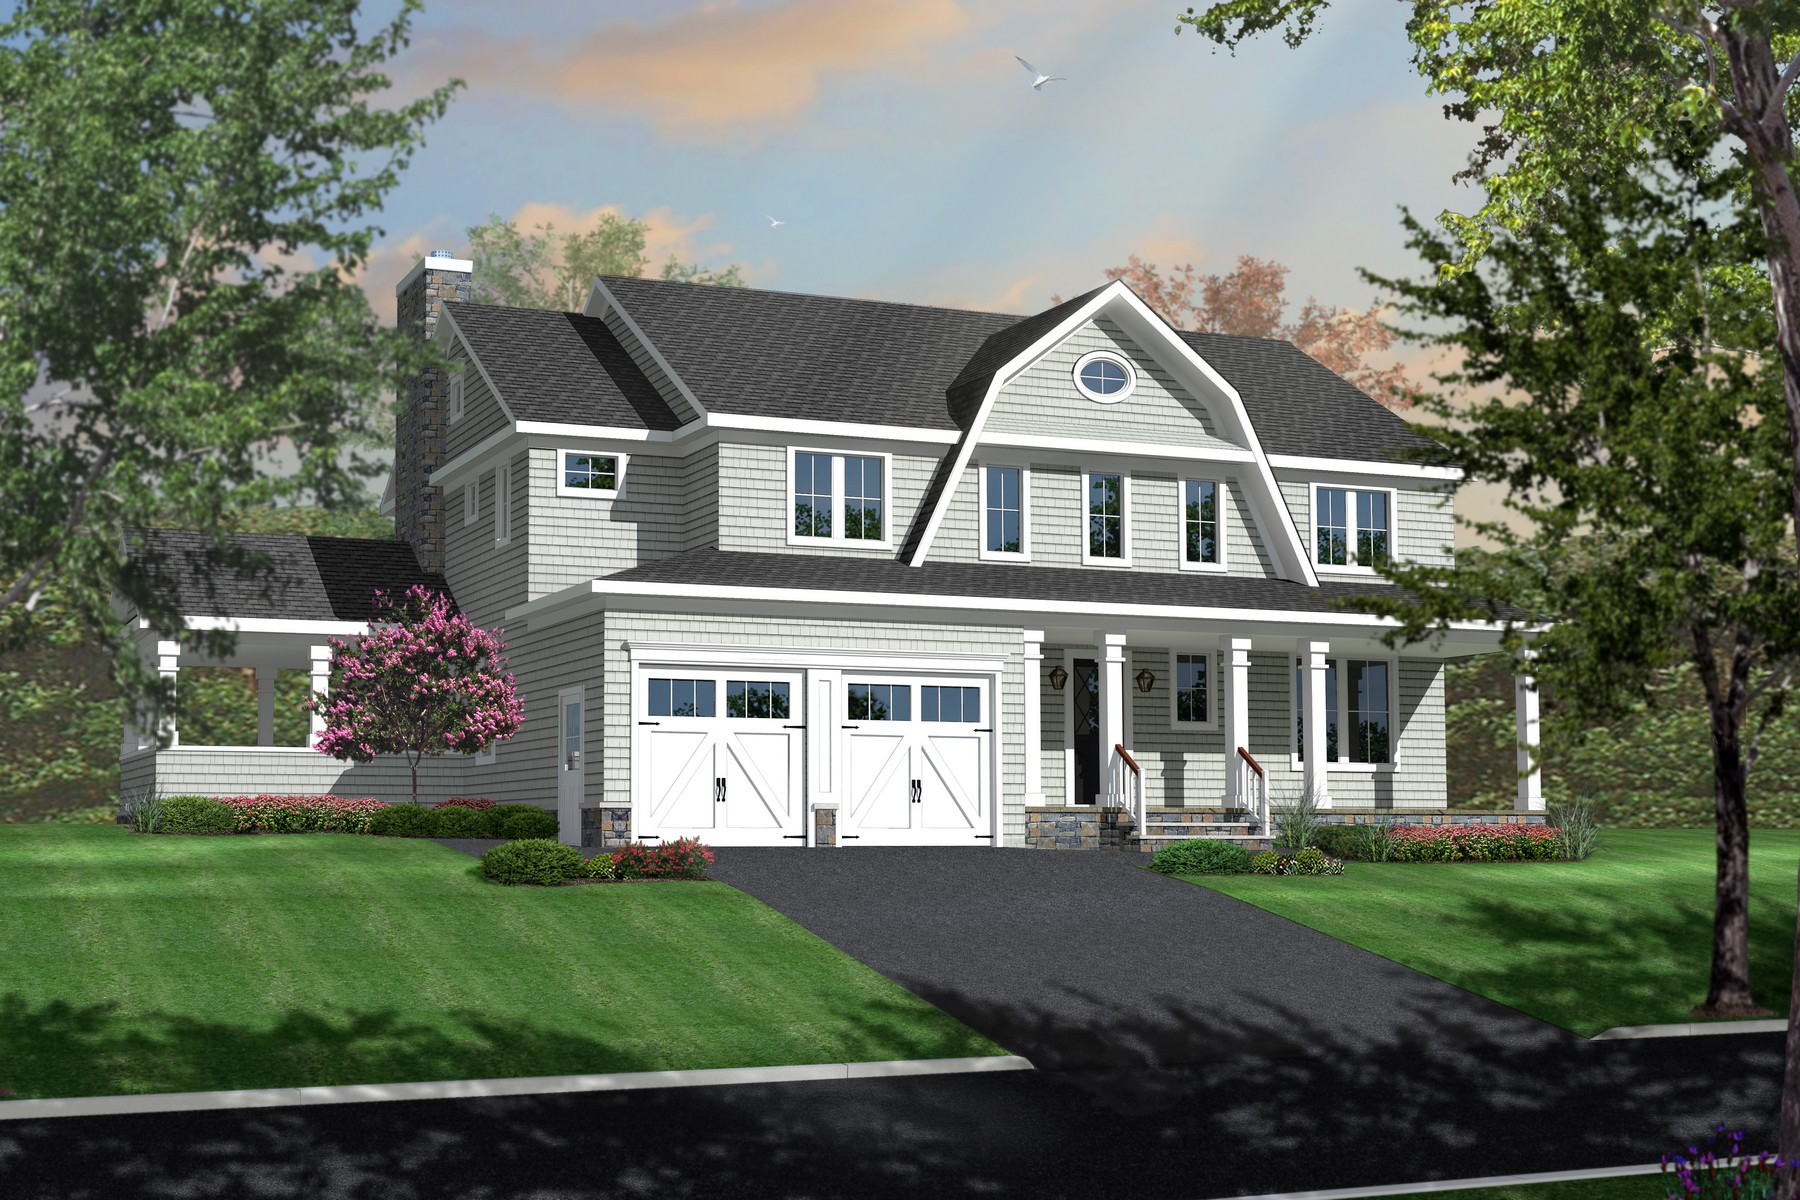 Moradia para Venda às NEW CONSTRUCTION in a PRIME LOCATION 72 Buttonwood Dr Fair Haven, Nova Jersey 07704 Estados Unidos